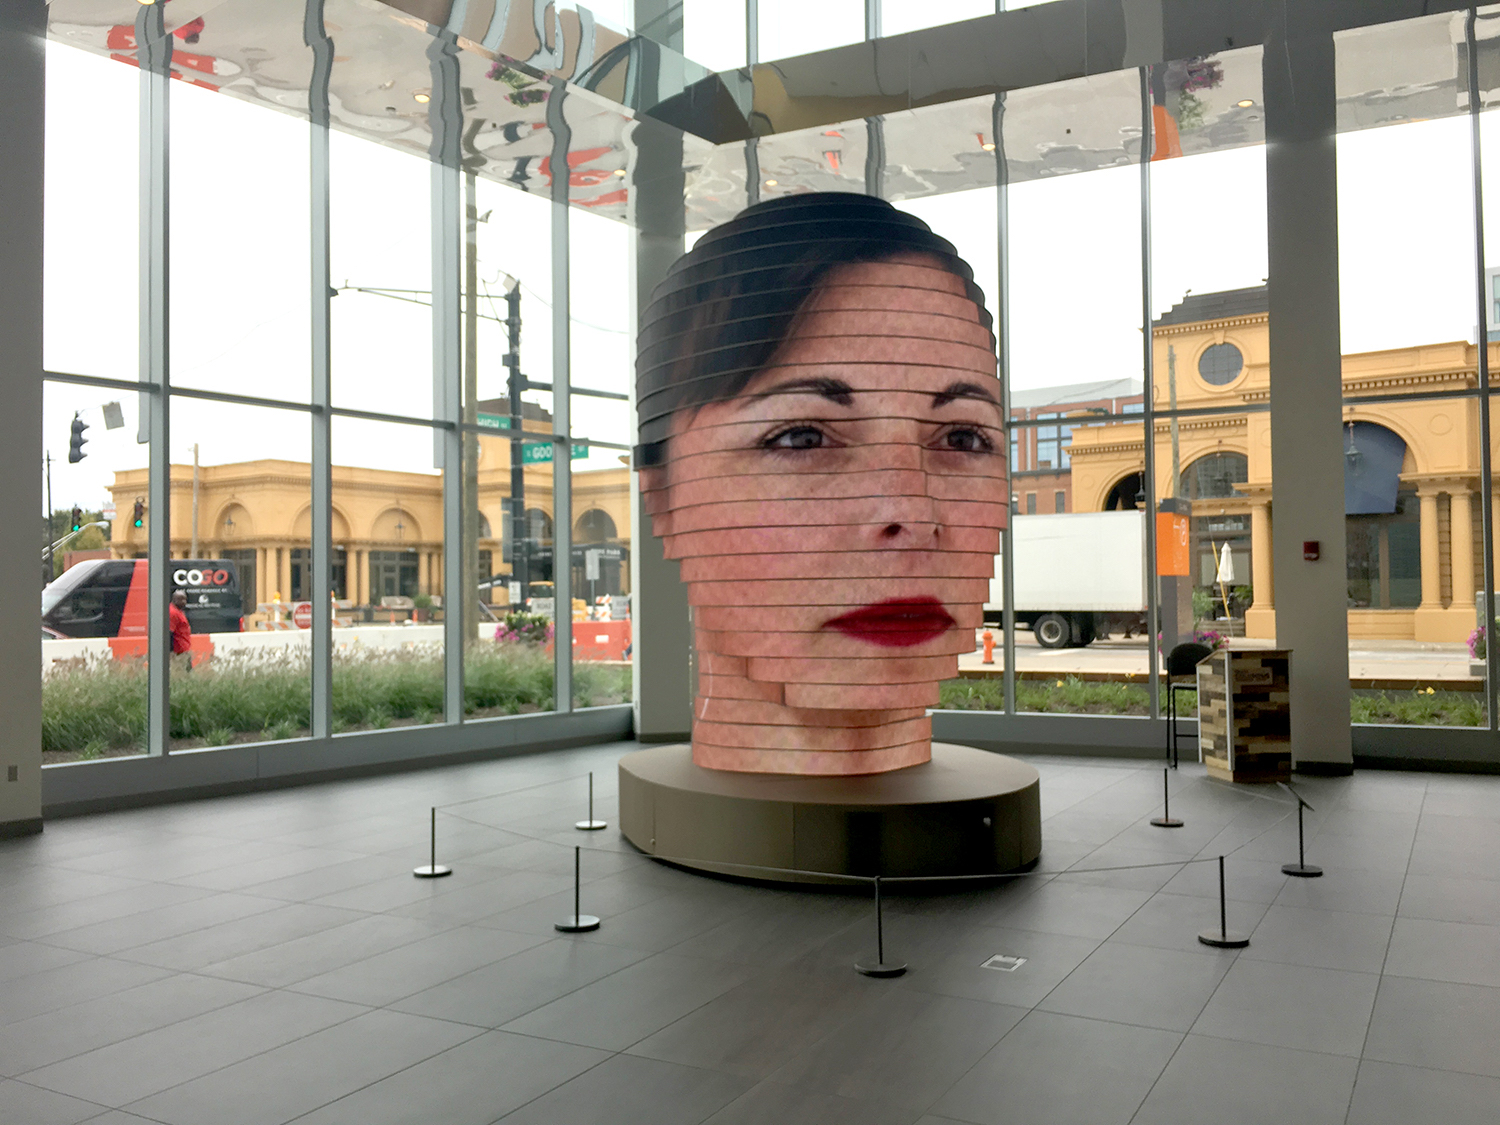 Interactive LED Sculpture Projects Visitors' Faces